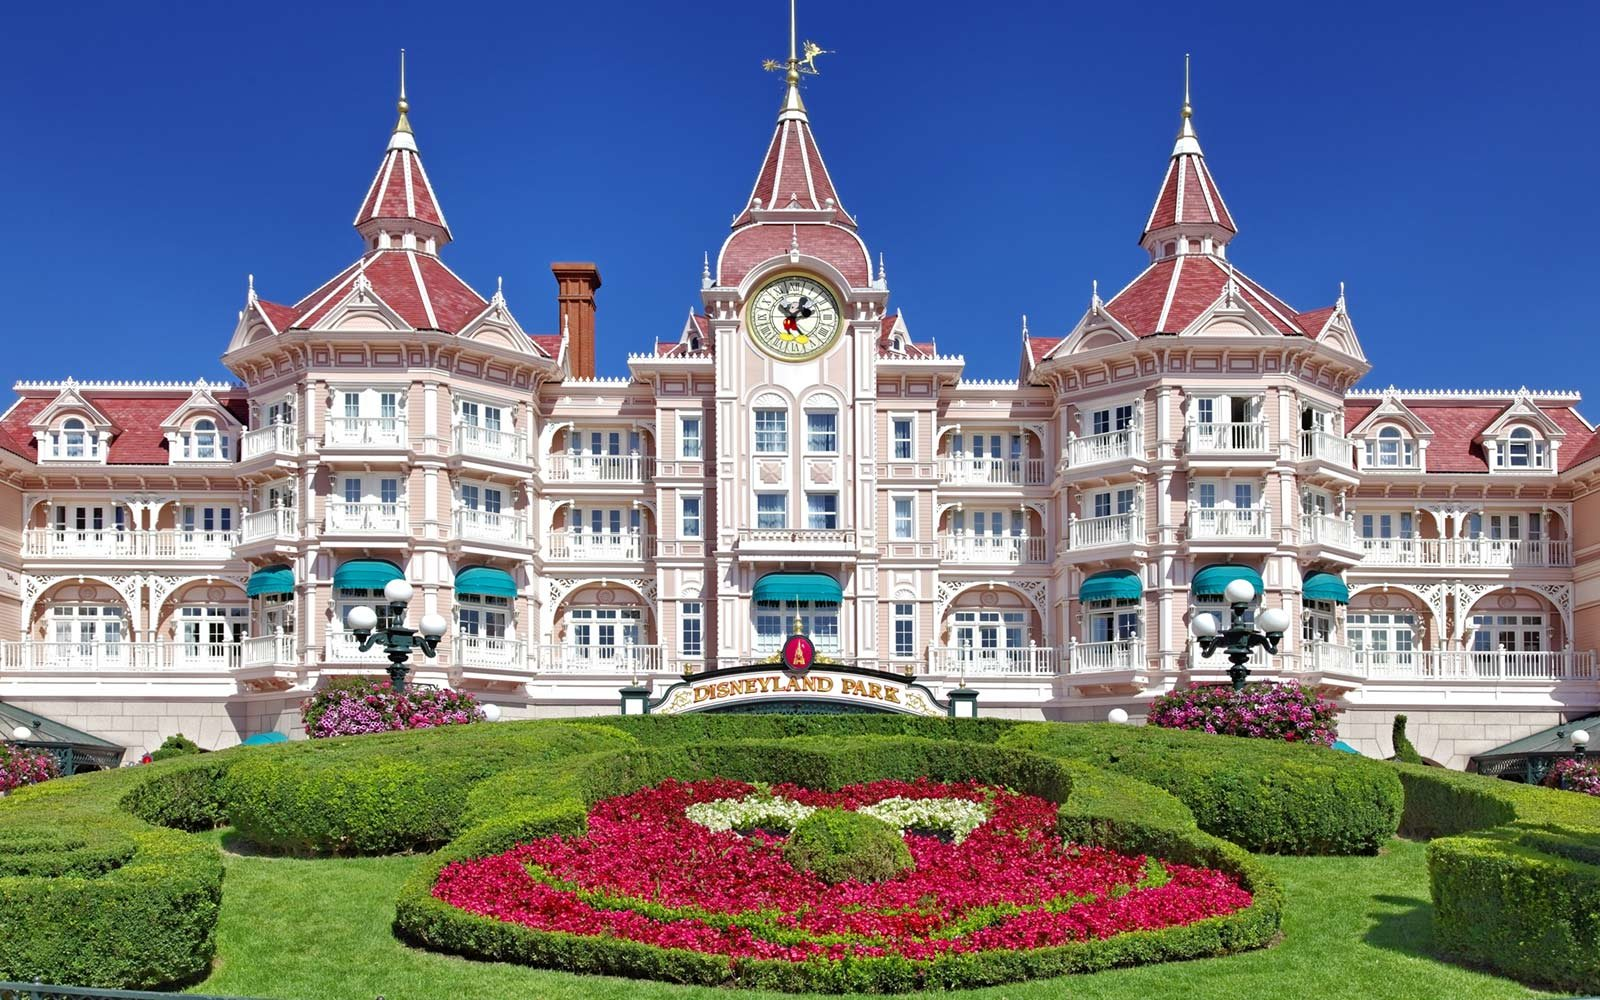 Disneyland Hotel, Disneyland Paris, France